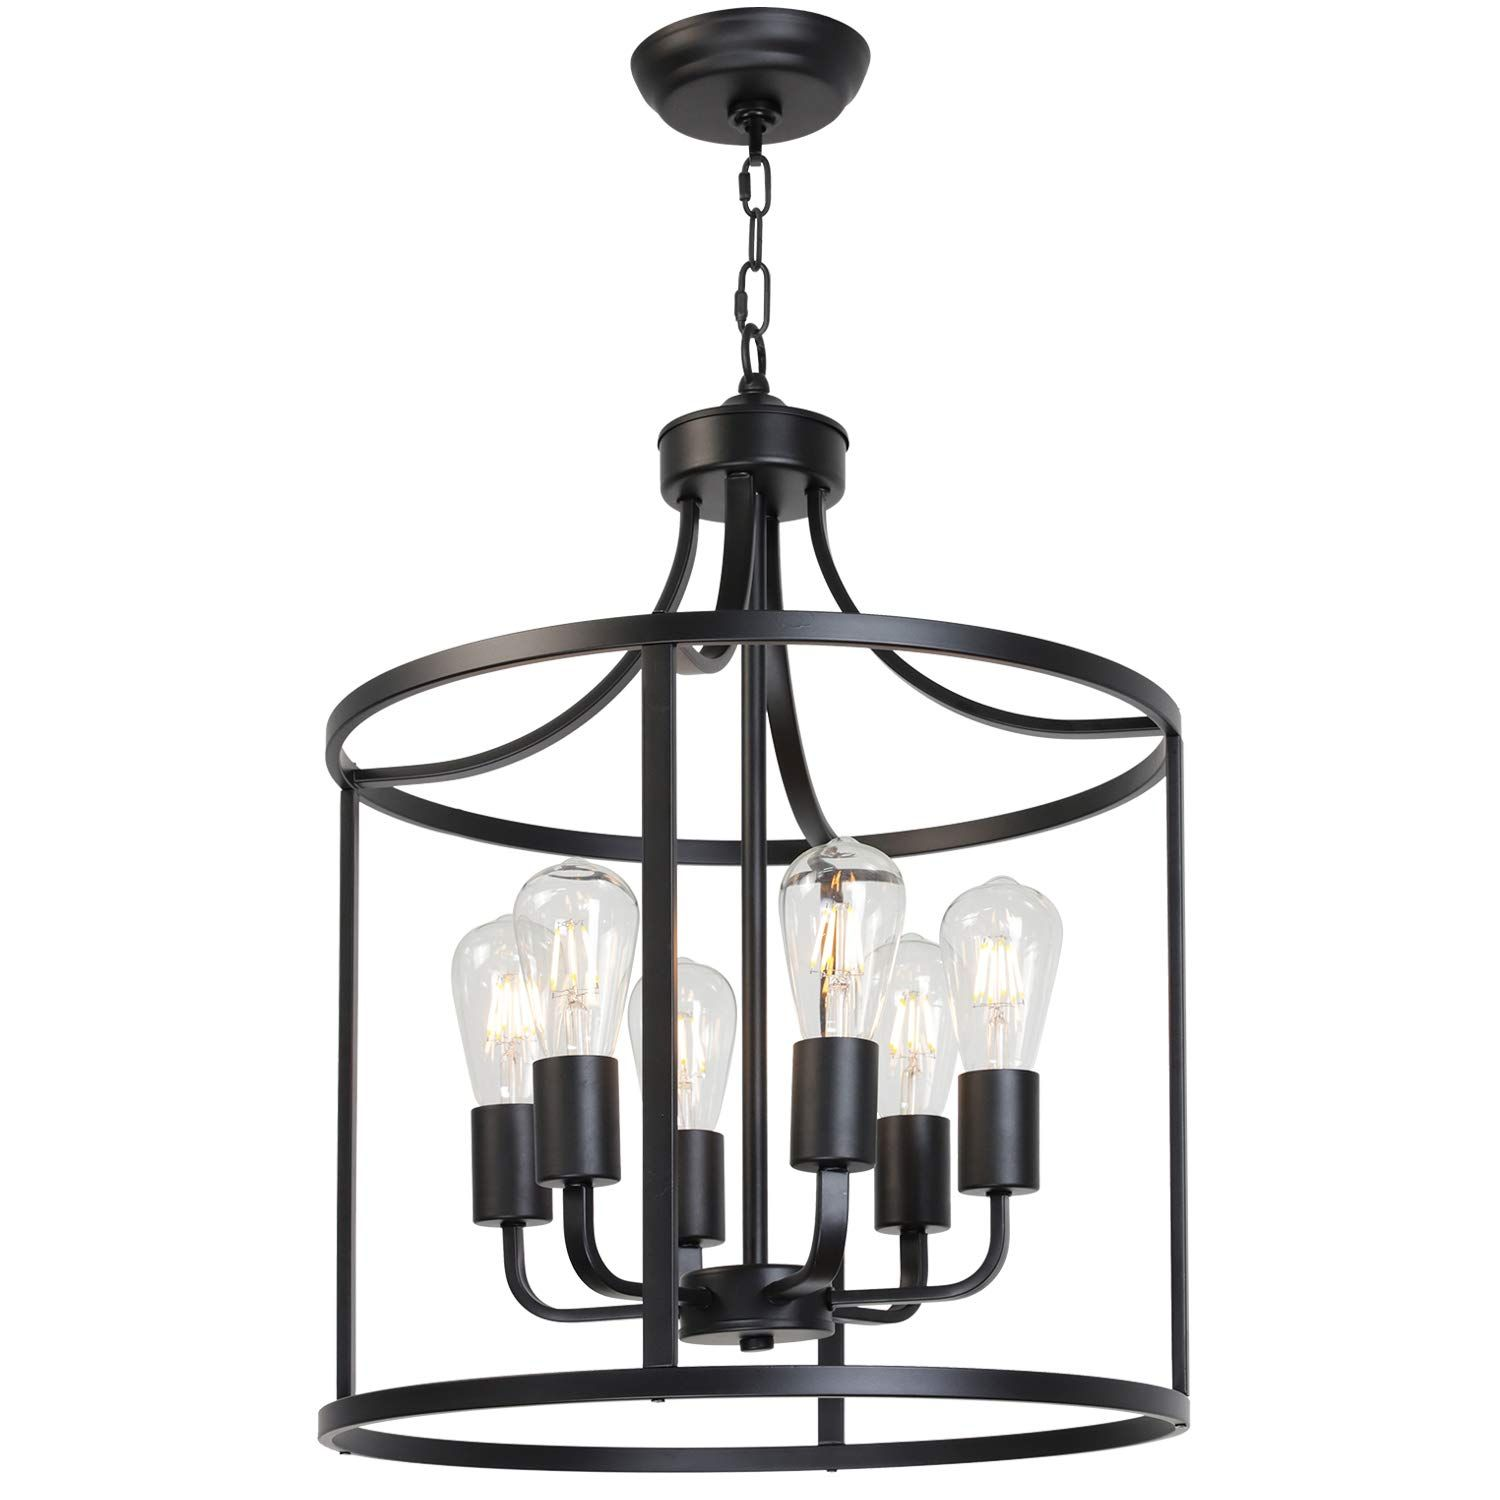 Vinluz Classic Chandeliers 6 Lights Foyer Pendant Light Black Rustic Farmhouse Lighti In 2020 Modern Ceiling Light Fixtures Modern Ceiling Light Foyer Pendant Lighting